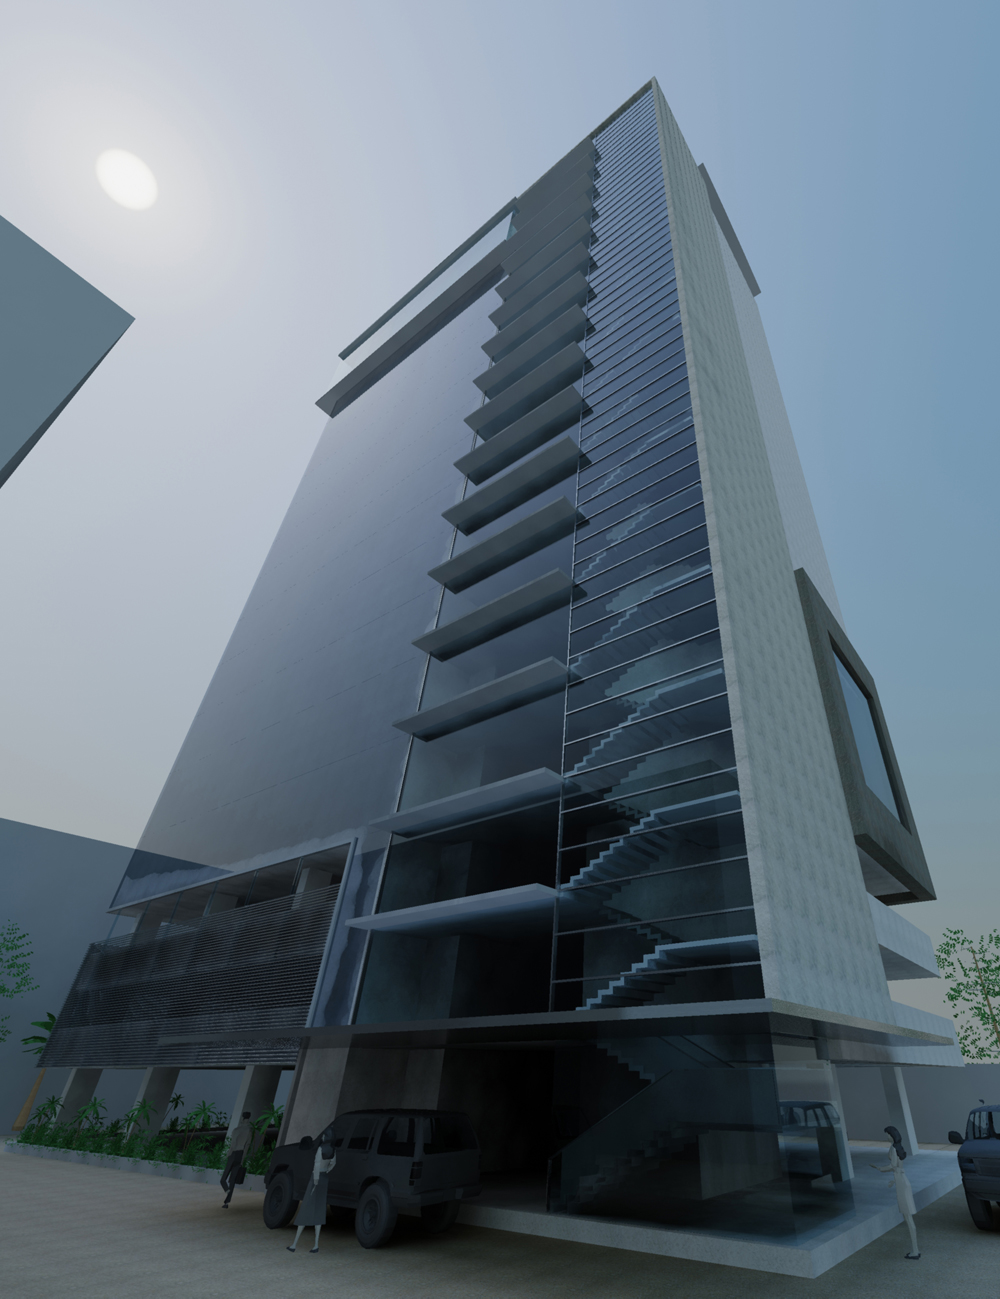 Commercial Office Space for Rent in Synergy Bussiness Park Savkar Wadi Near Western Ex Opp Aarey Road, Goregaon-West, Mumbai